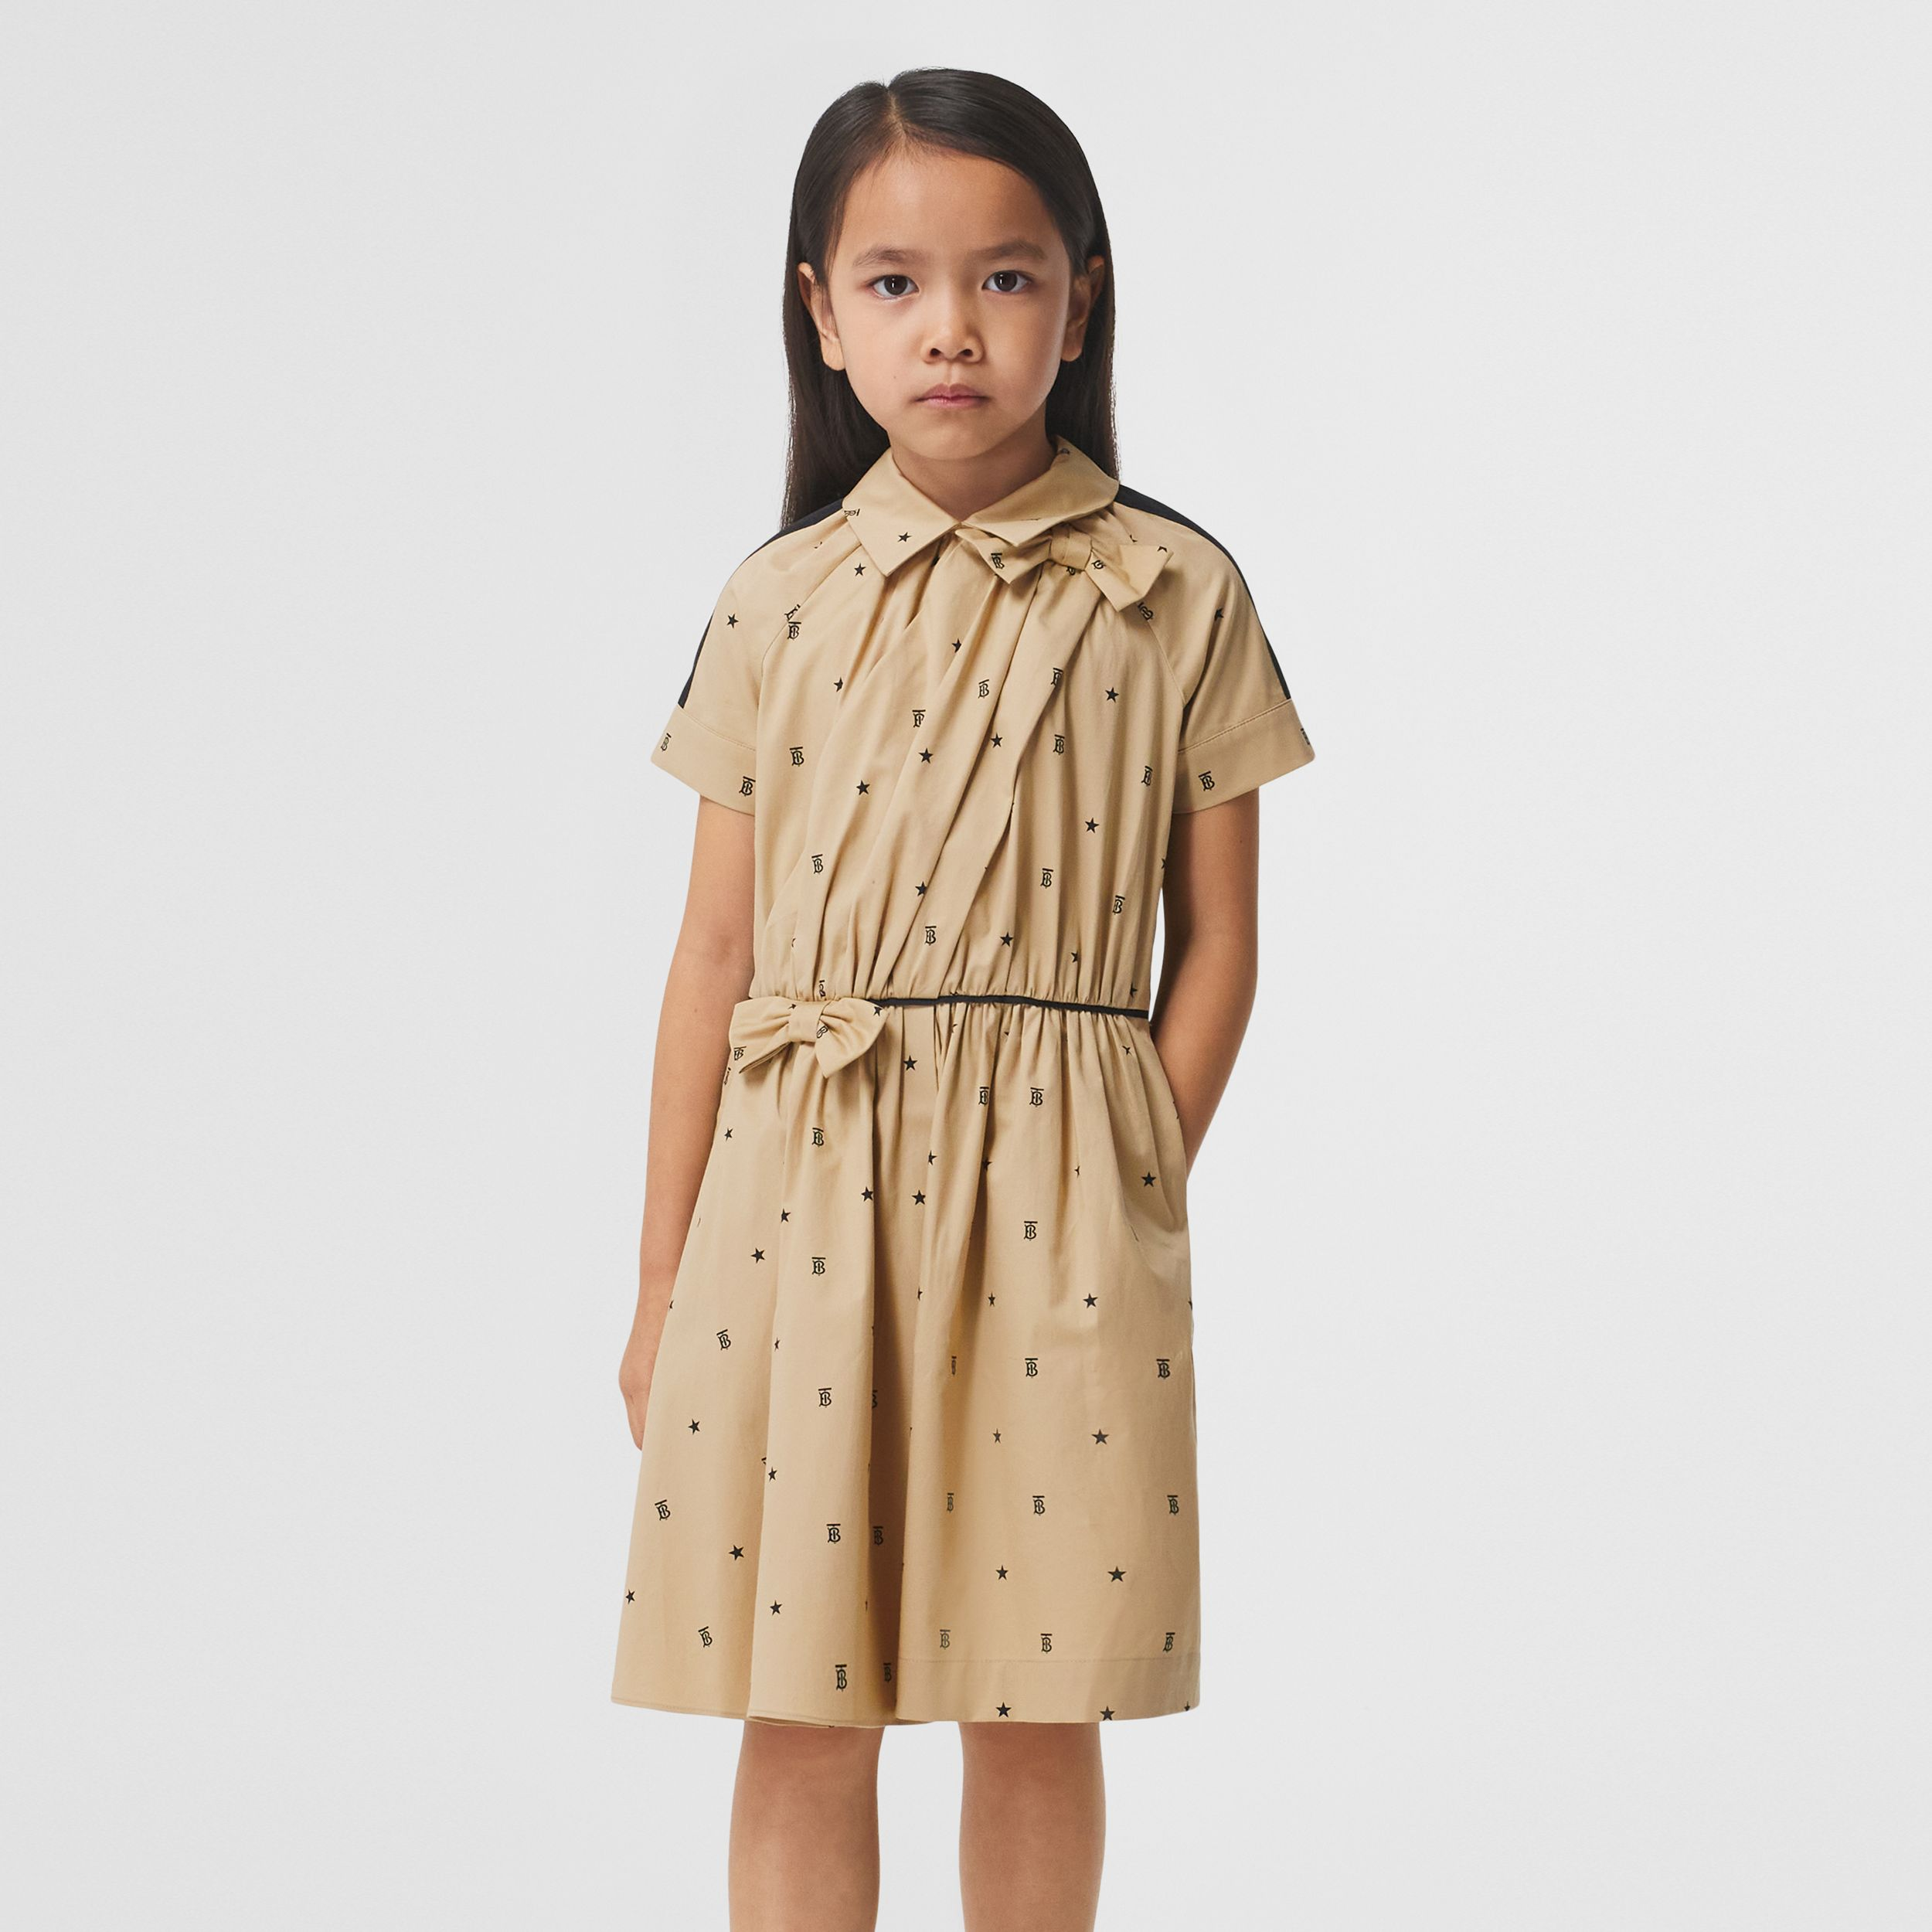 Star and Monogram Motif Stretch Cotton Dress in Sand | Burberry Hong Kong S.A.R. - 3